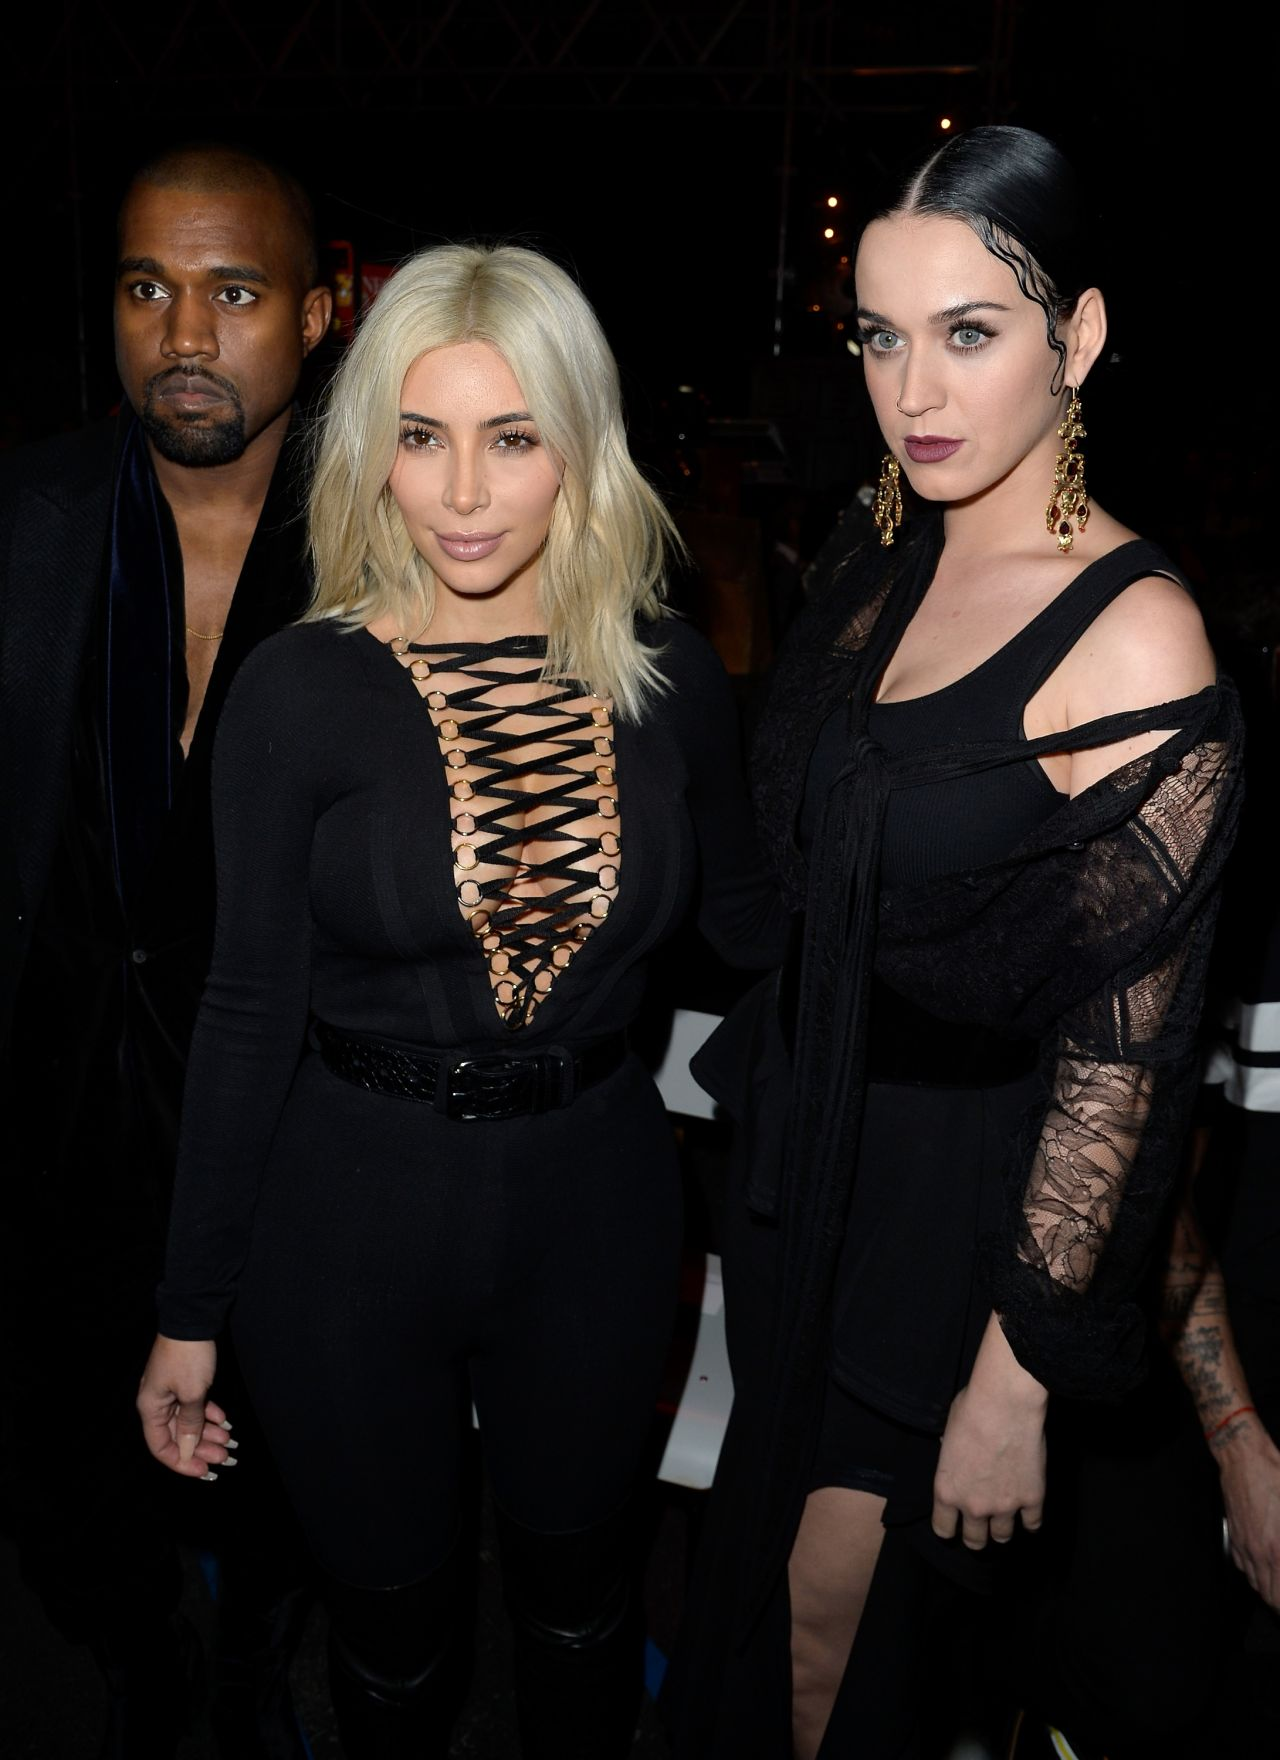 Kanye ,Katy Perry & Kim Kardashian – Givenchy Fashion Show in Paris, March 2015